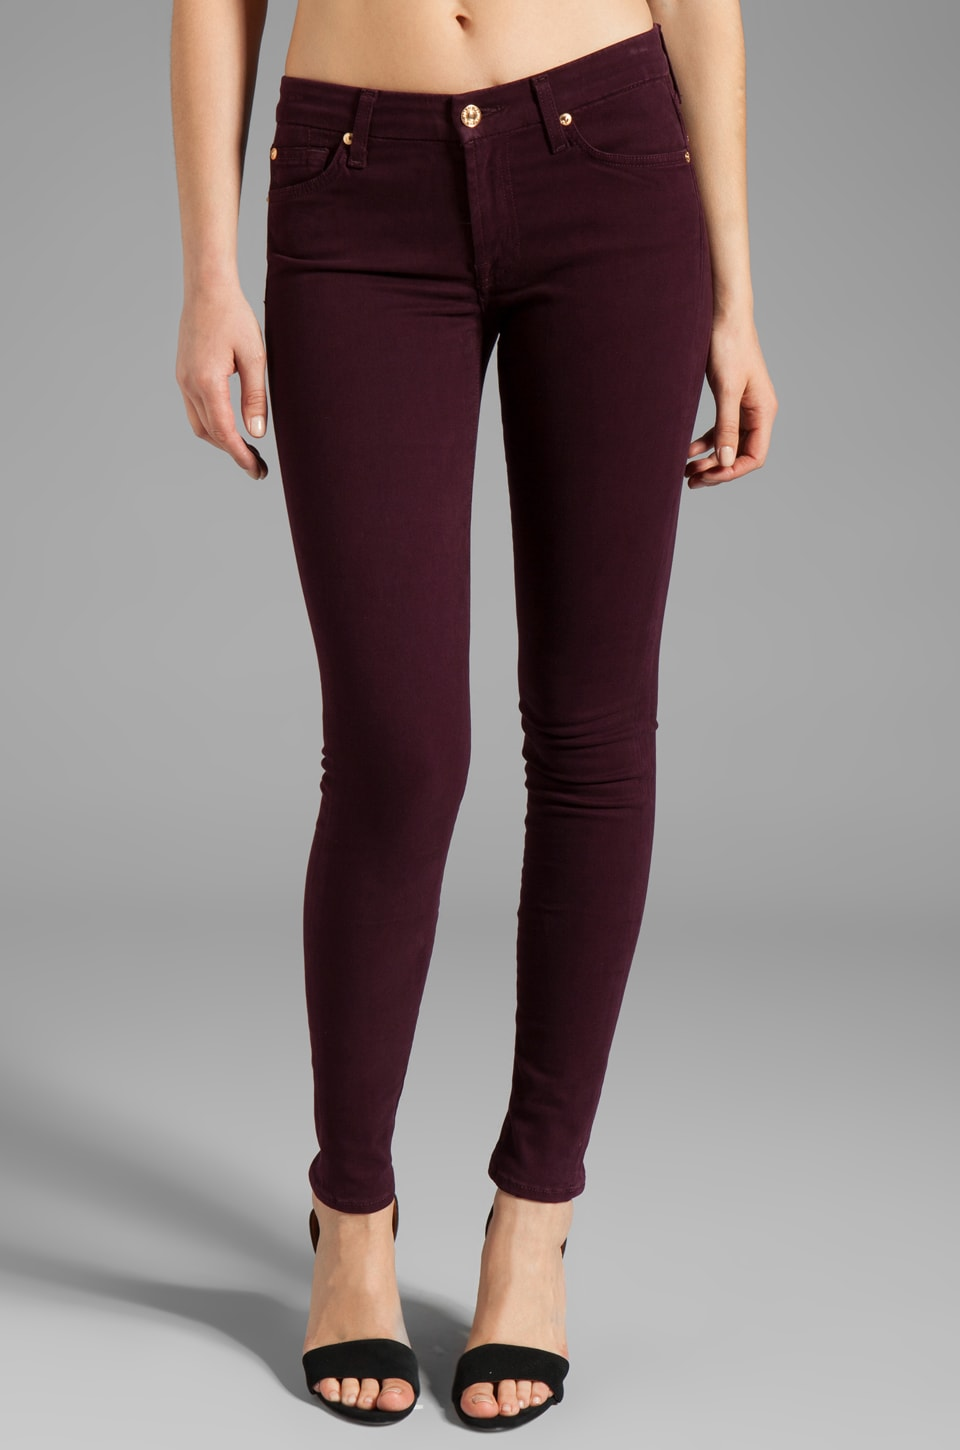 7 For All Mankind The Skinny in Boysenberry